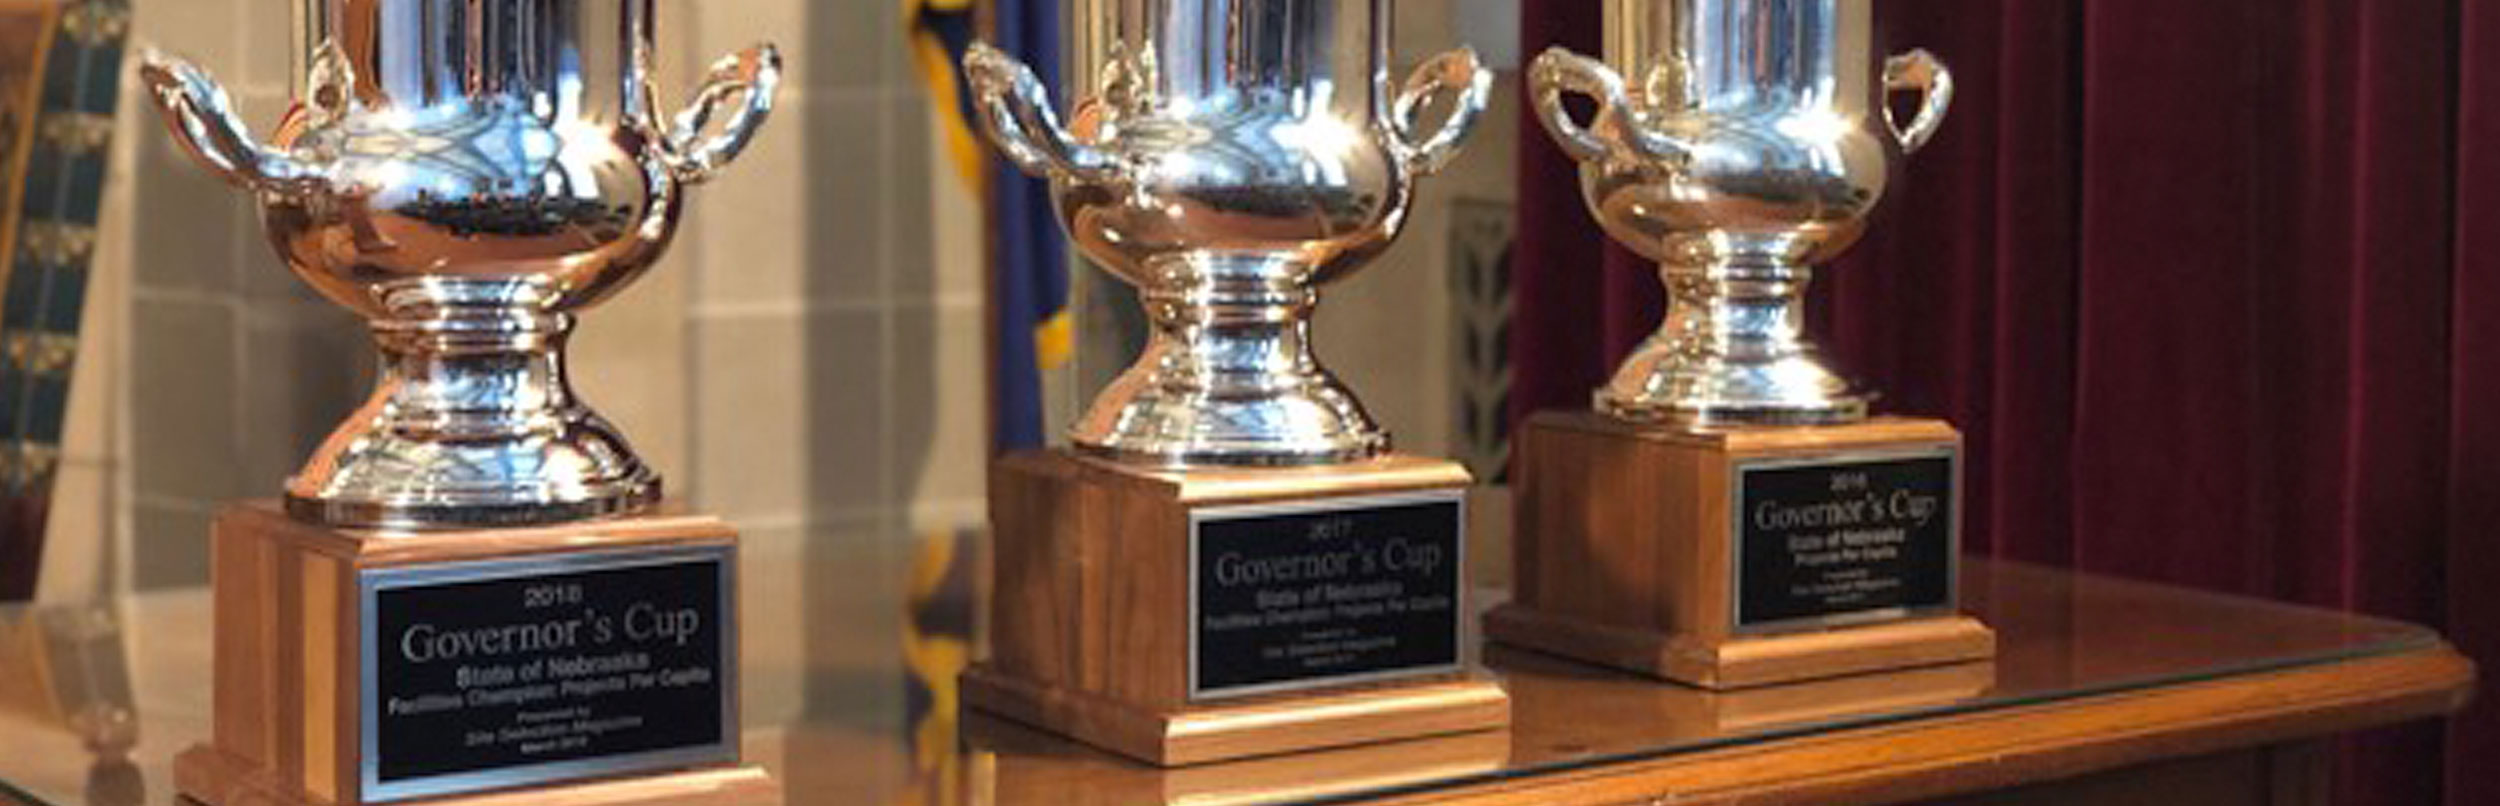 Nebraska wins third consecutive Governor's Cup